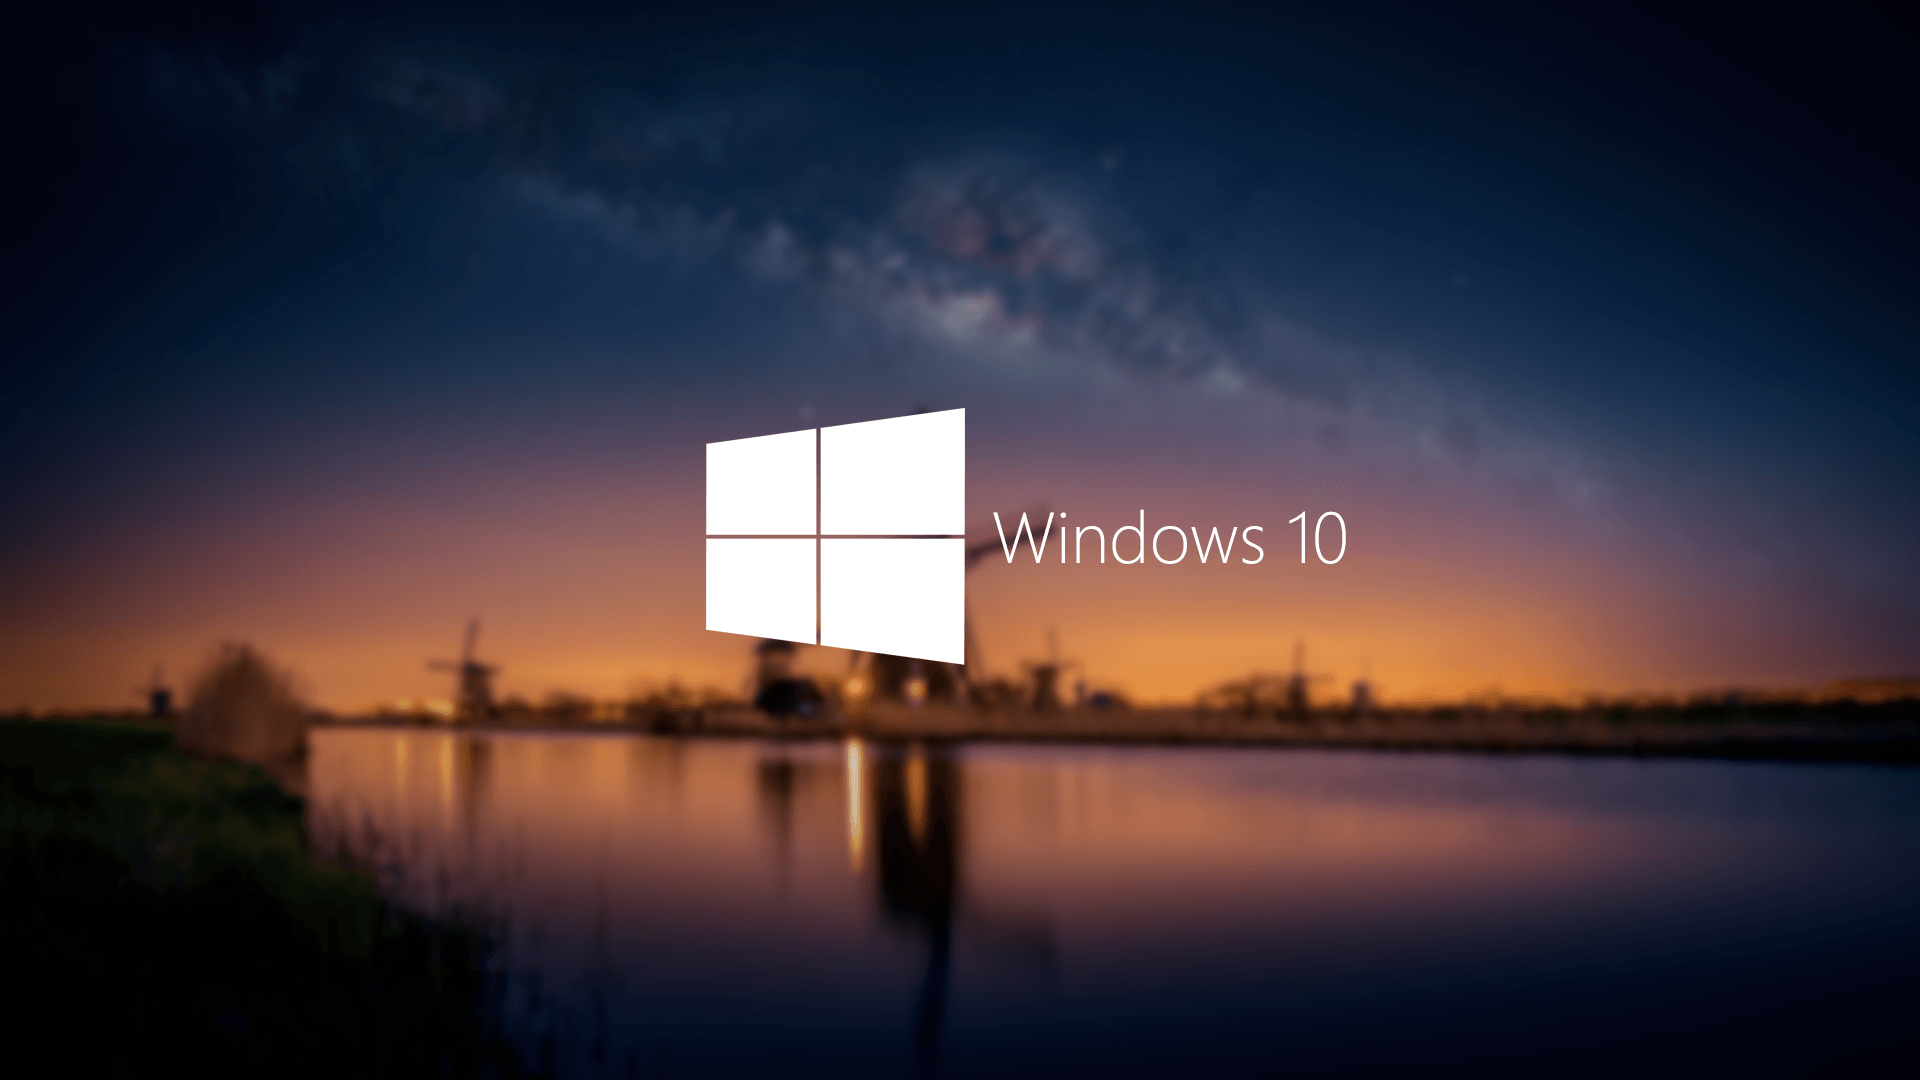 laptop hd wallpapers for windows 10 | pixelstalk